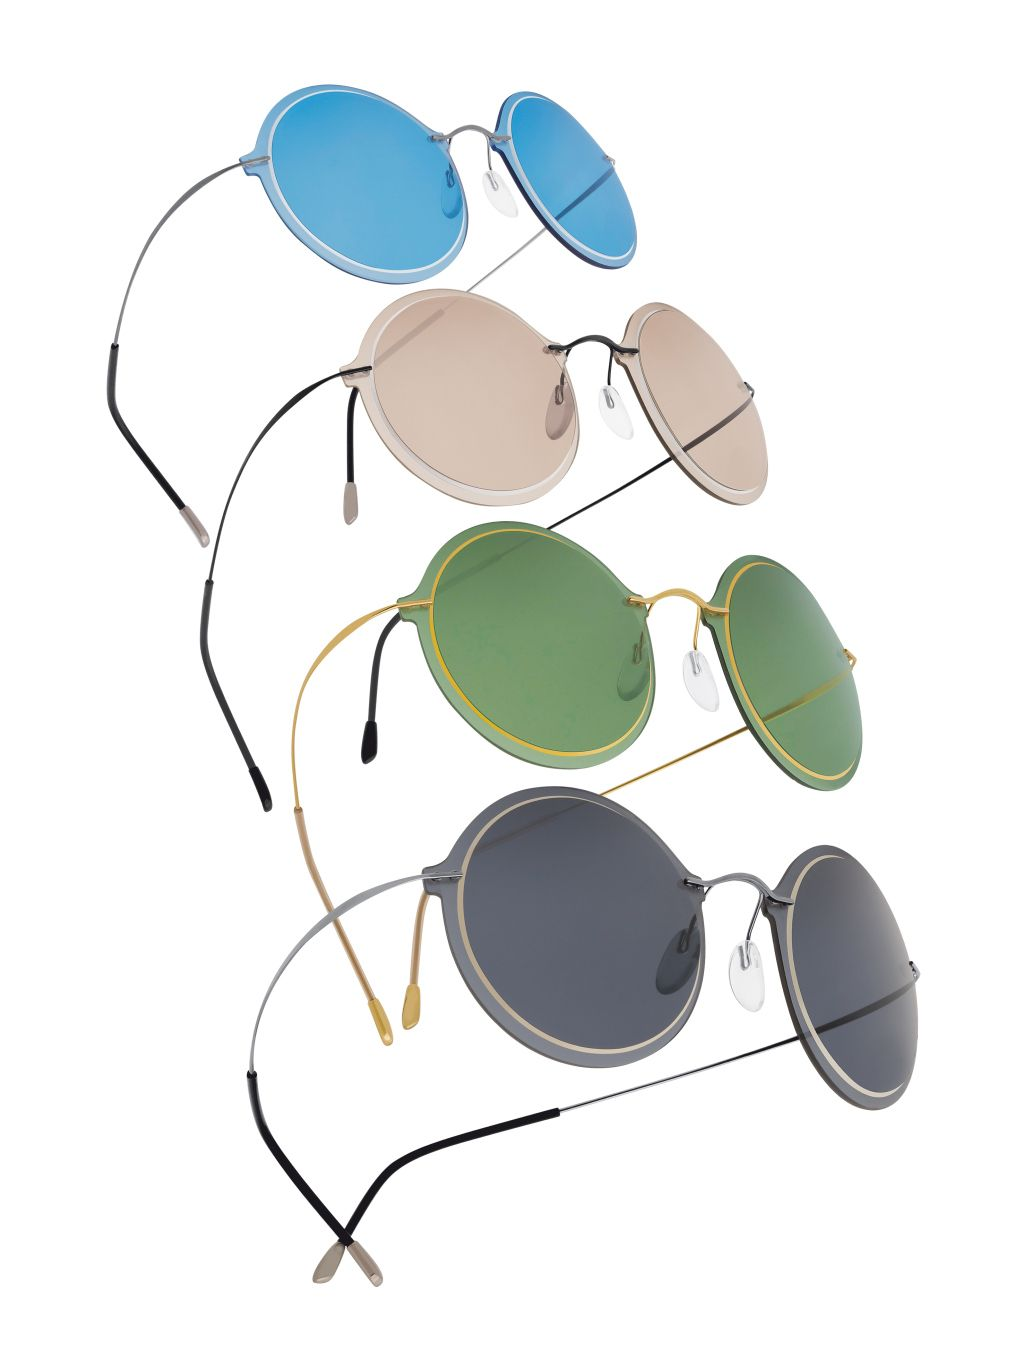 96845530195 Wes Gordon Enters Eyewear Arena in Collaboration With Silhouette ...